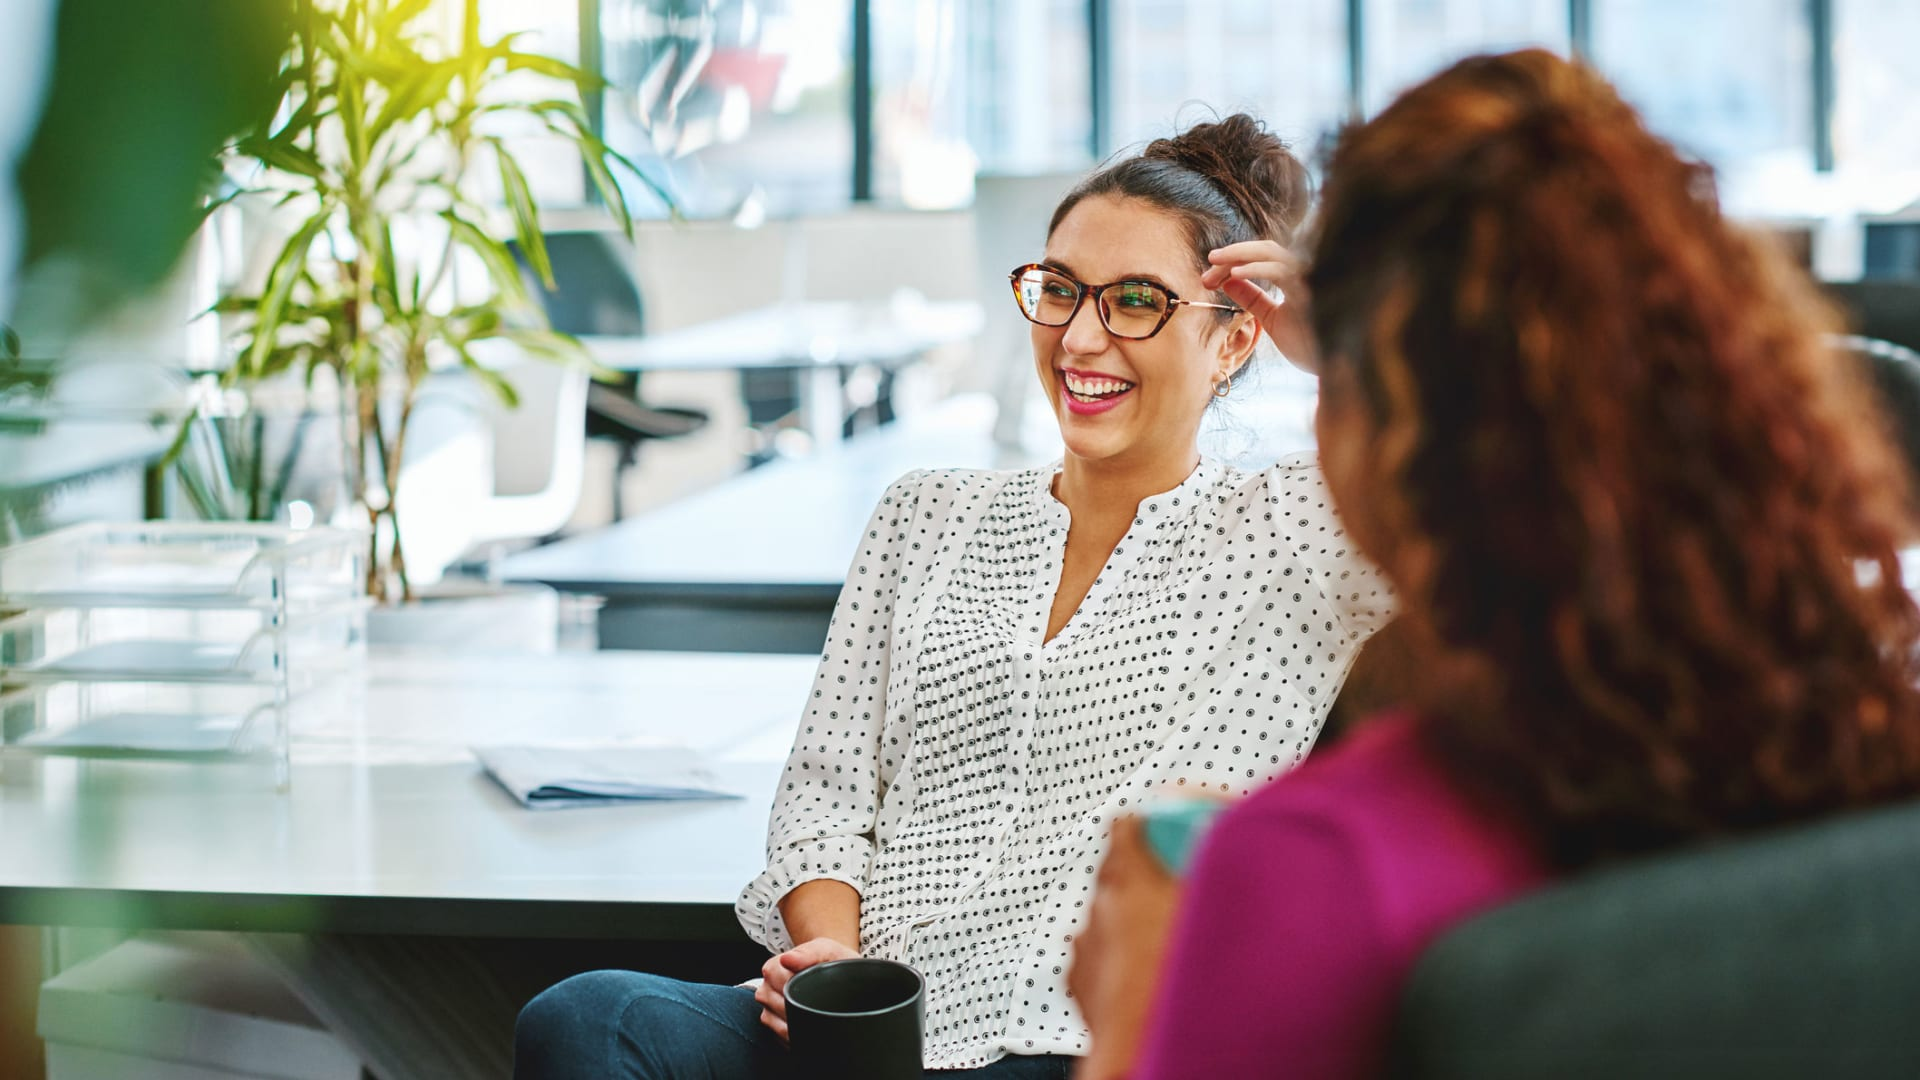 If You Don't Think of Company Culture as Your Best Competitive Advantage, Think Again